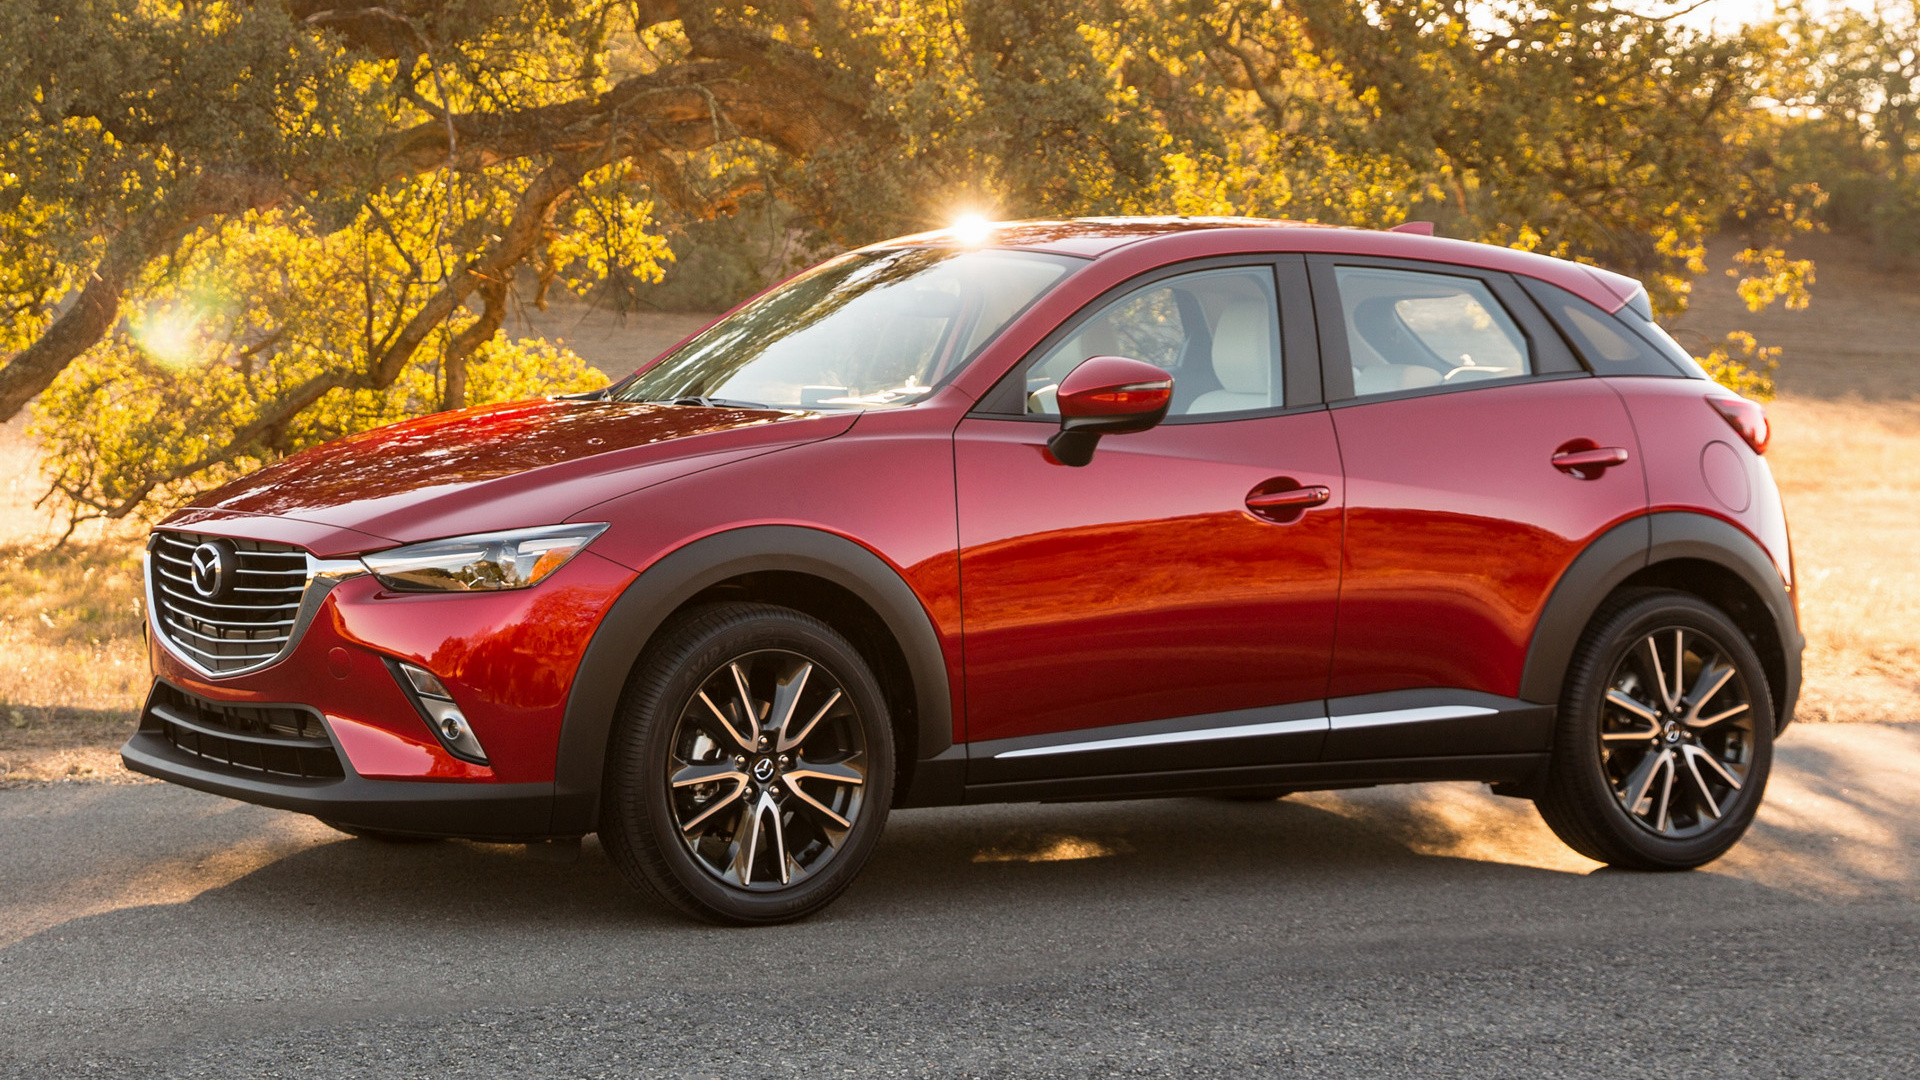 Dodge Ram 2015 >> Mazda CX-3 (2016) US Wallpapers and HD Images - Car Pixel